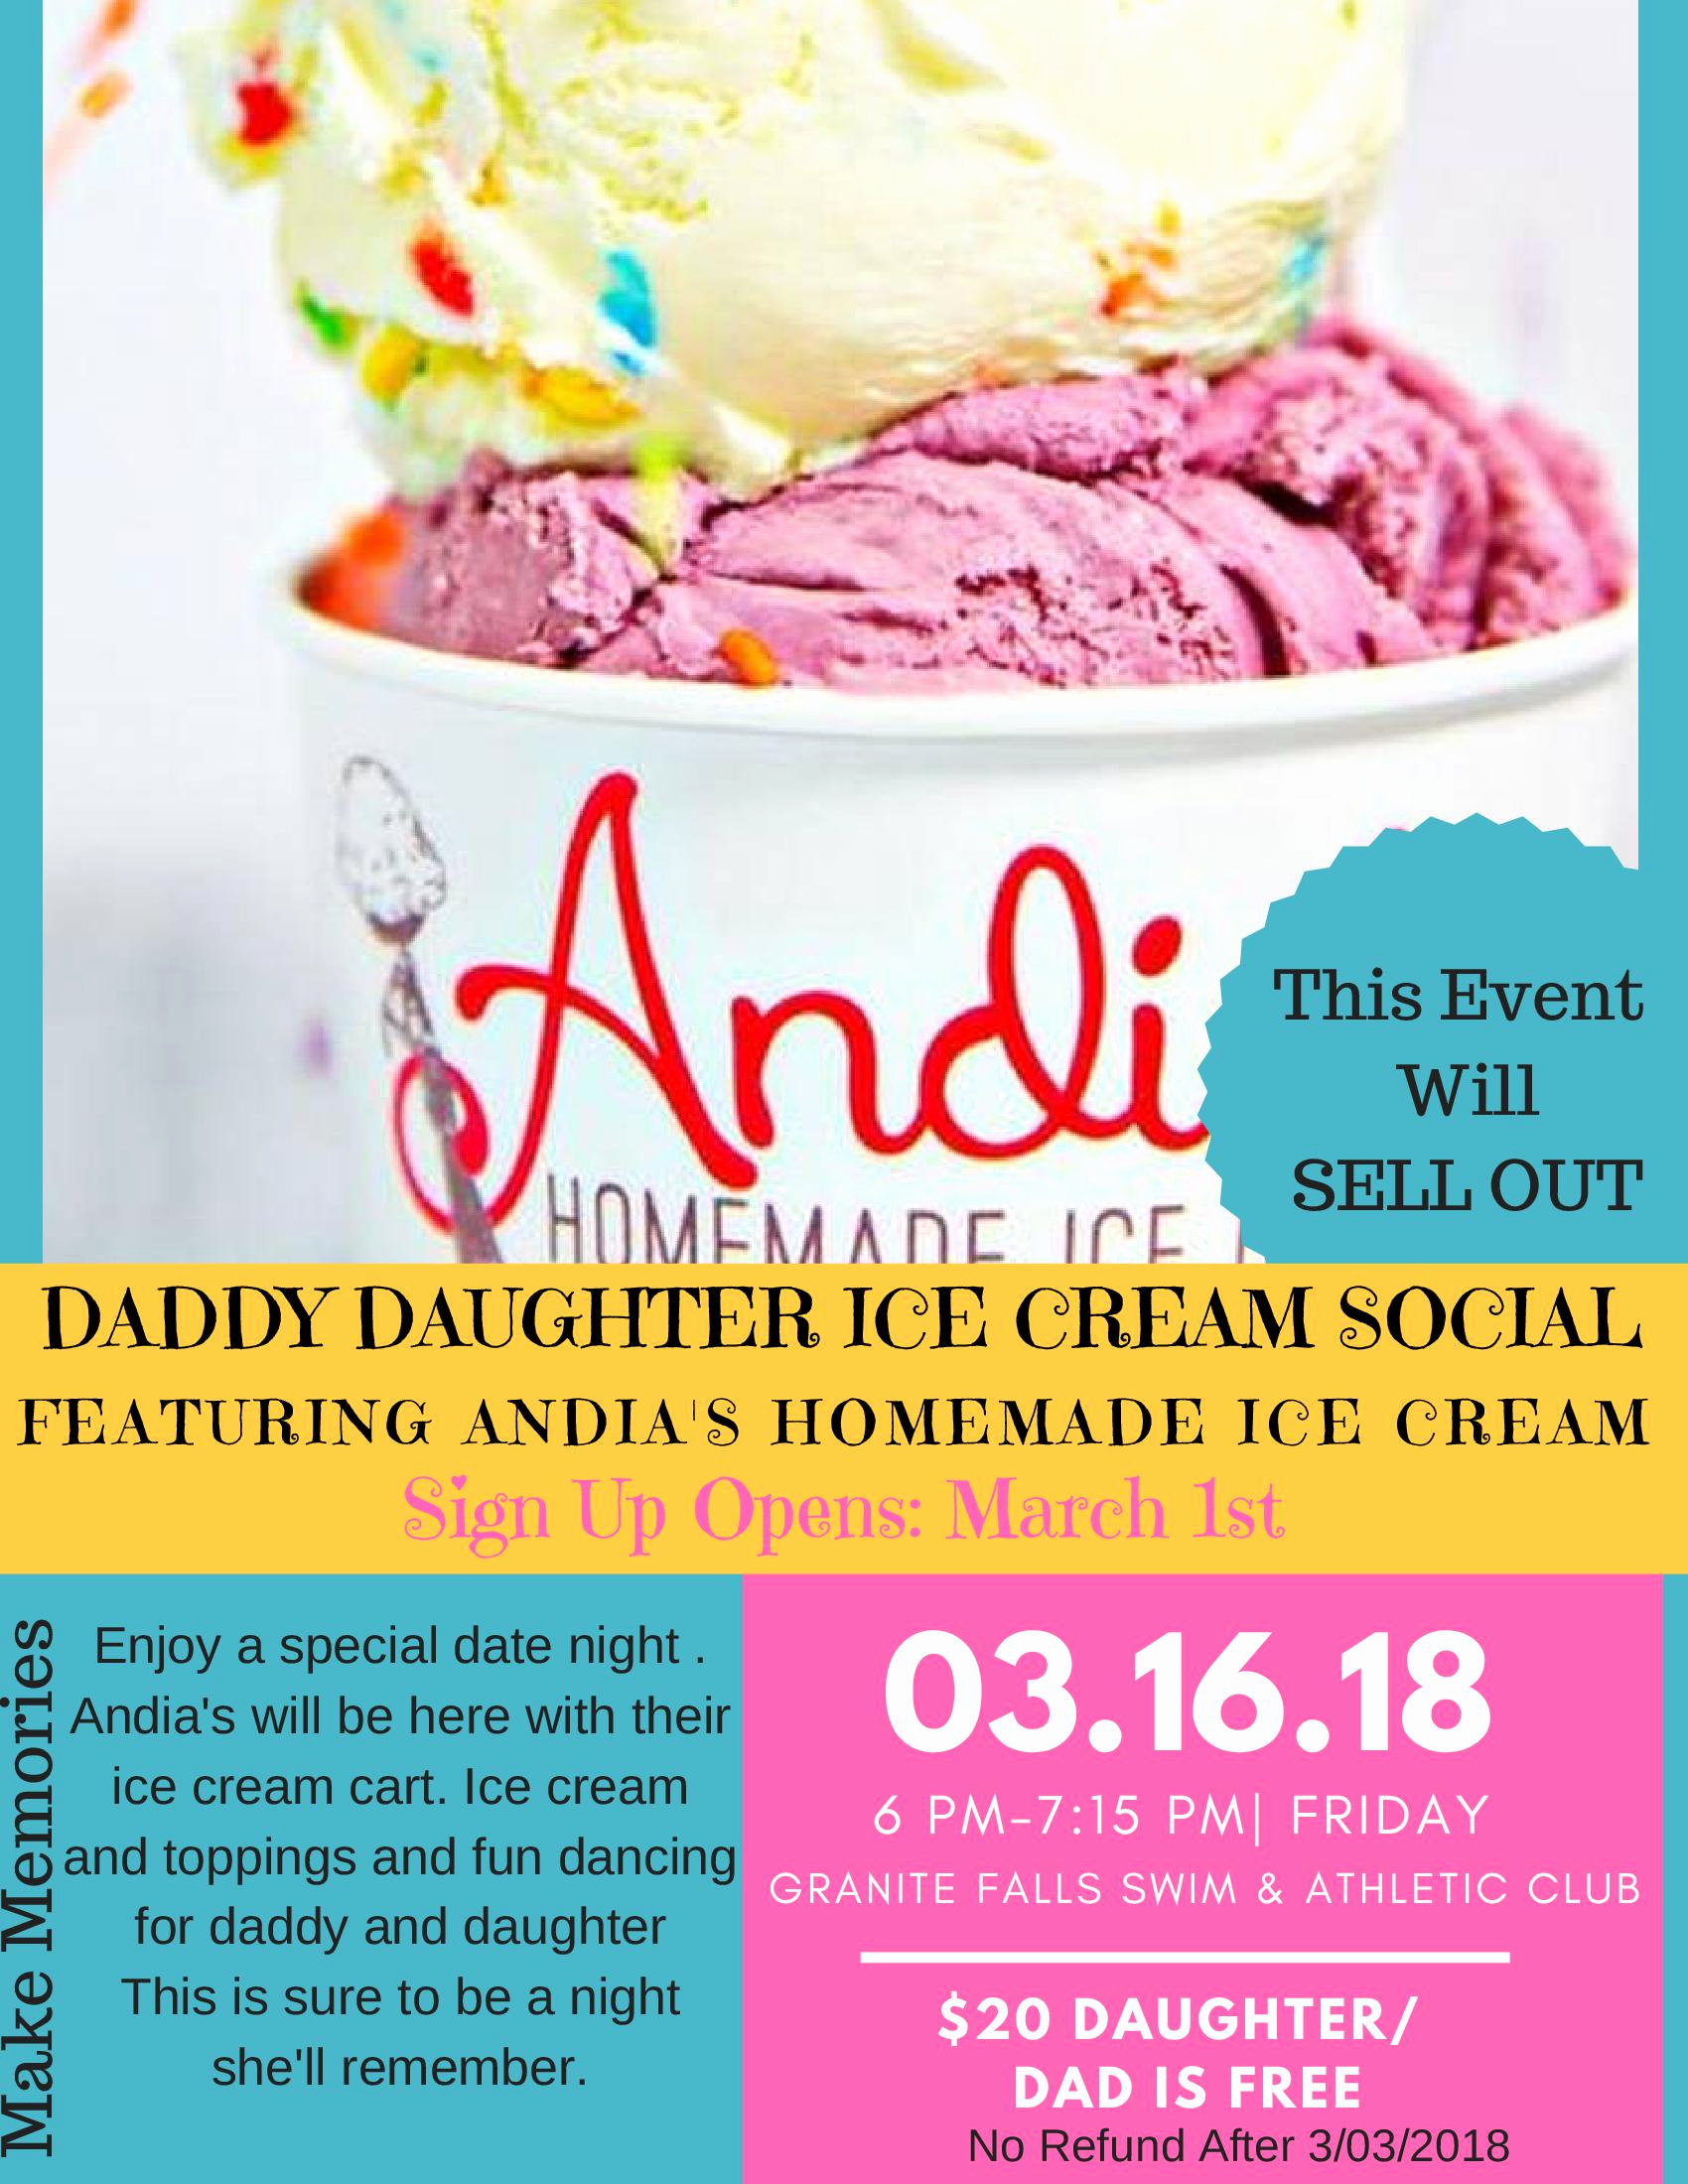 Ice Cream social Flyer Best Of Special events Granite Falls Swim & athletic Club